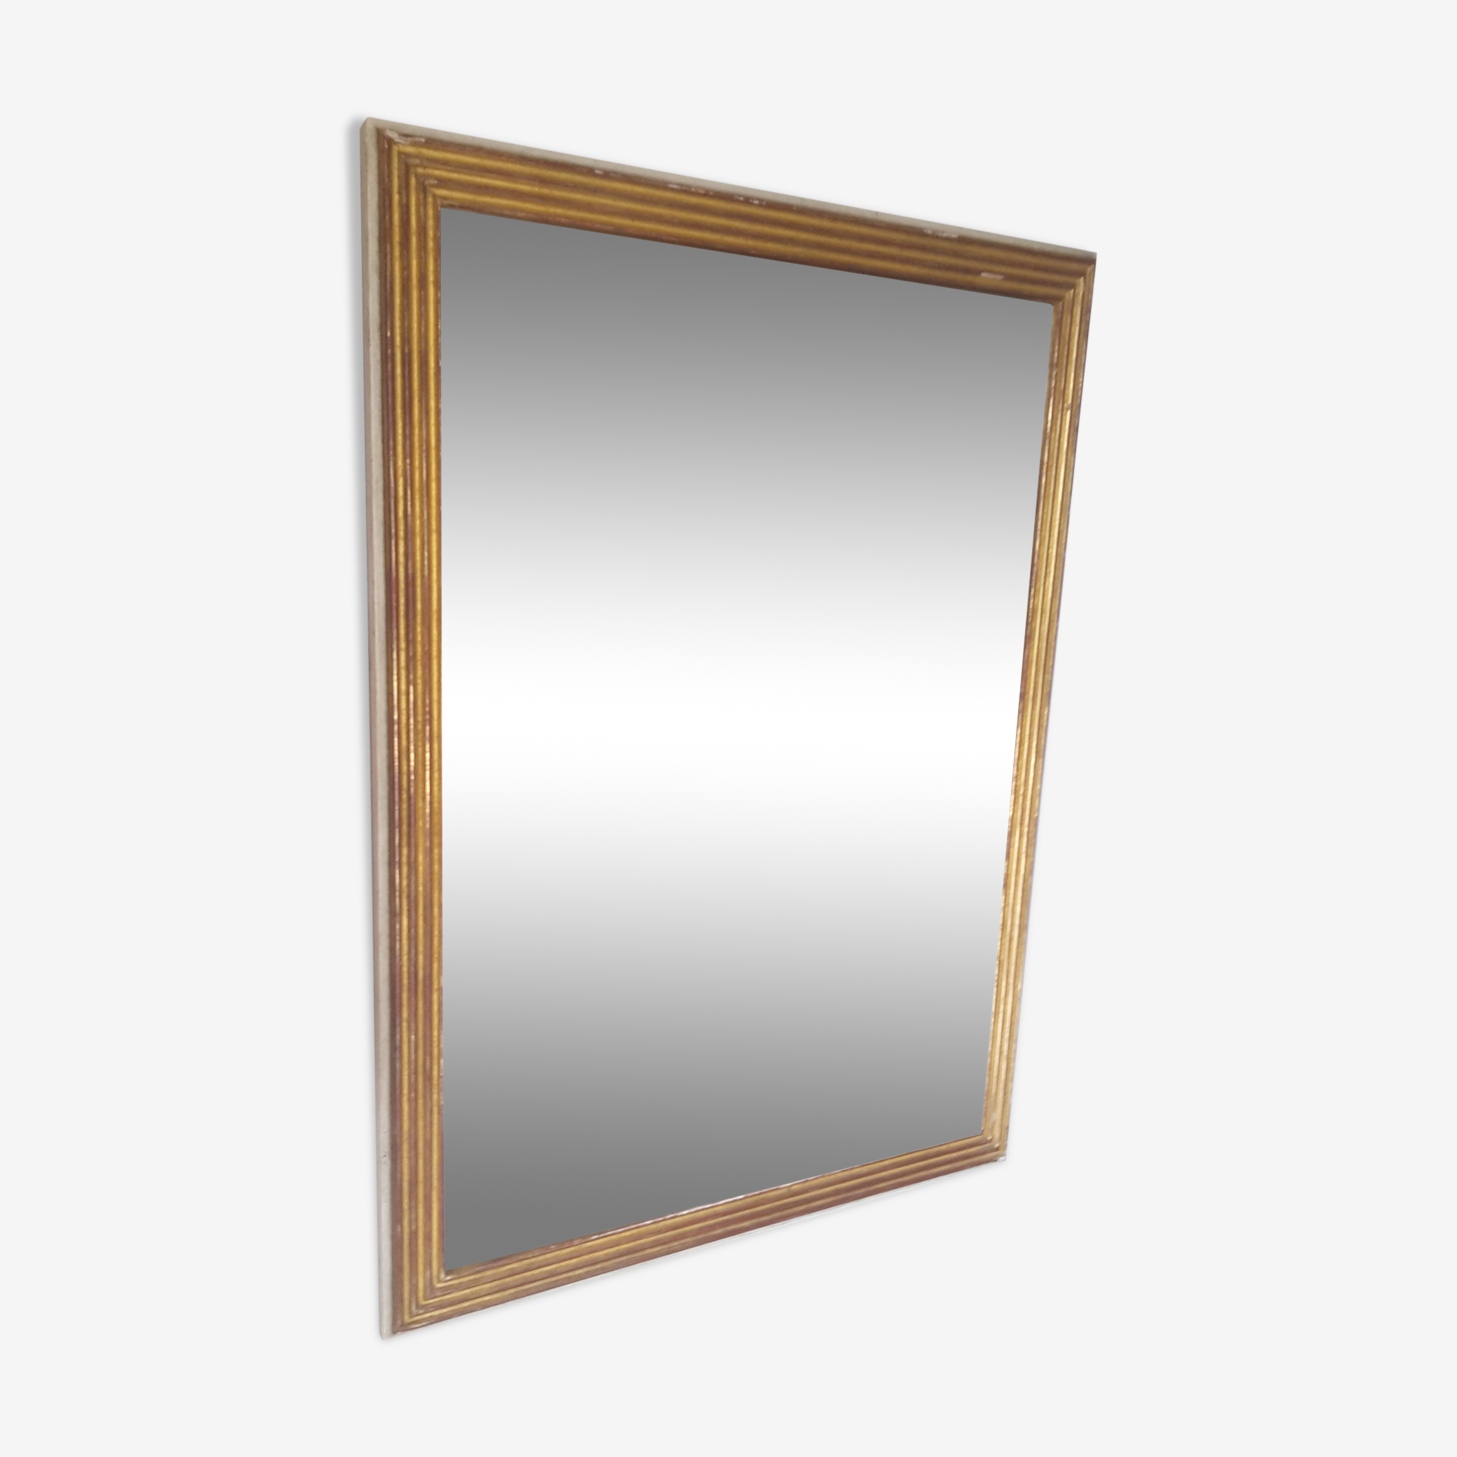 Patinated mirror in the Louis XVI style 63x84cm